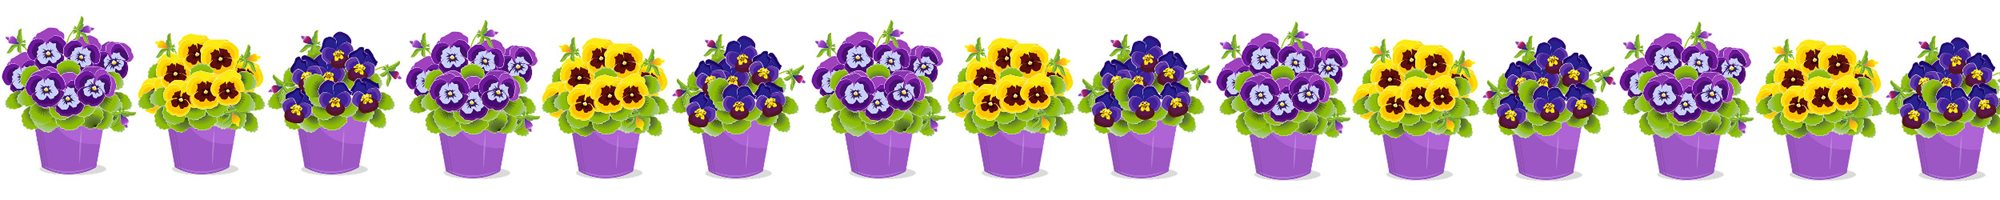 illustration of flowers in pots